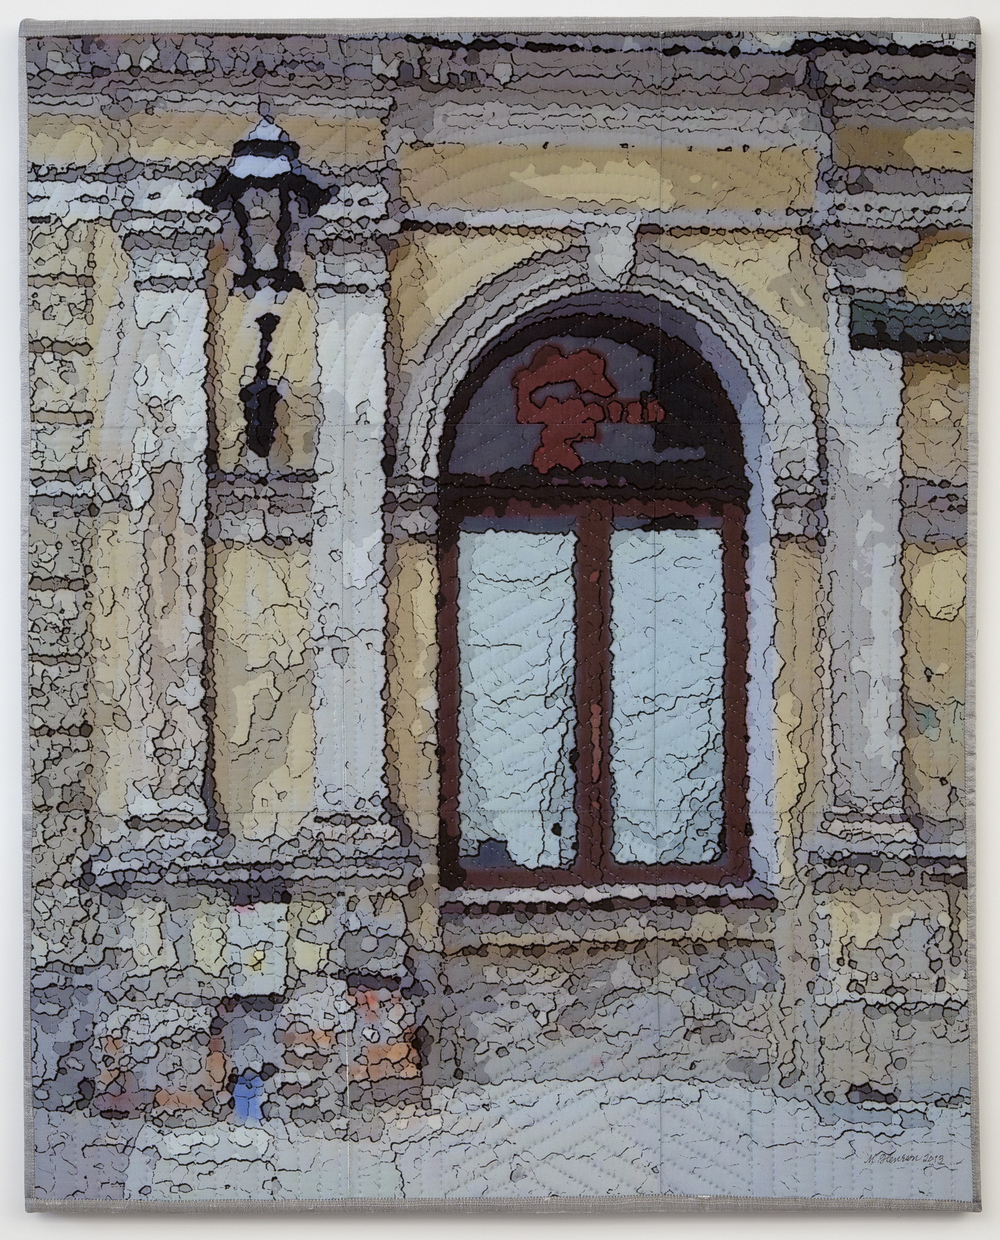 "2000-7. Krakow Windows 1339, 30""x24""x1"", mixed media on silk, pieced, hand quilted, gallery-wrapped stretched canvas"